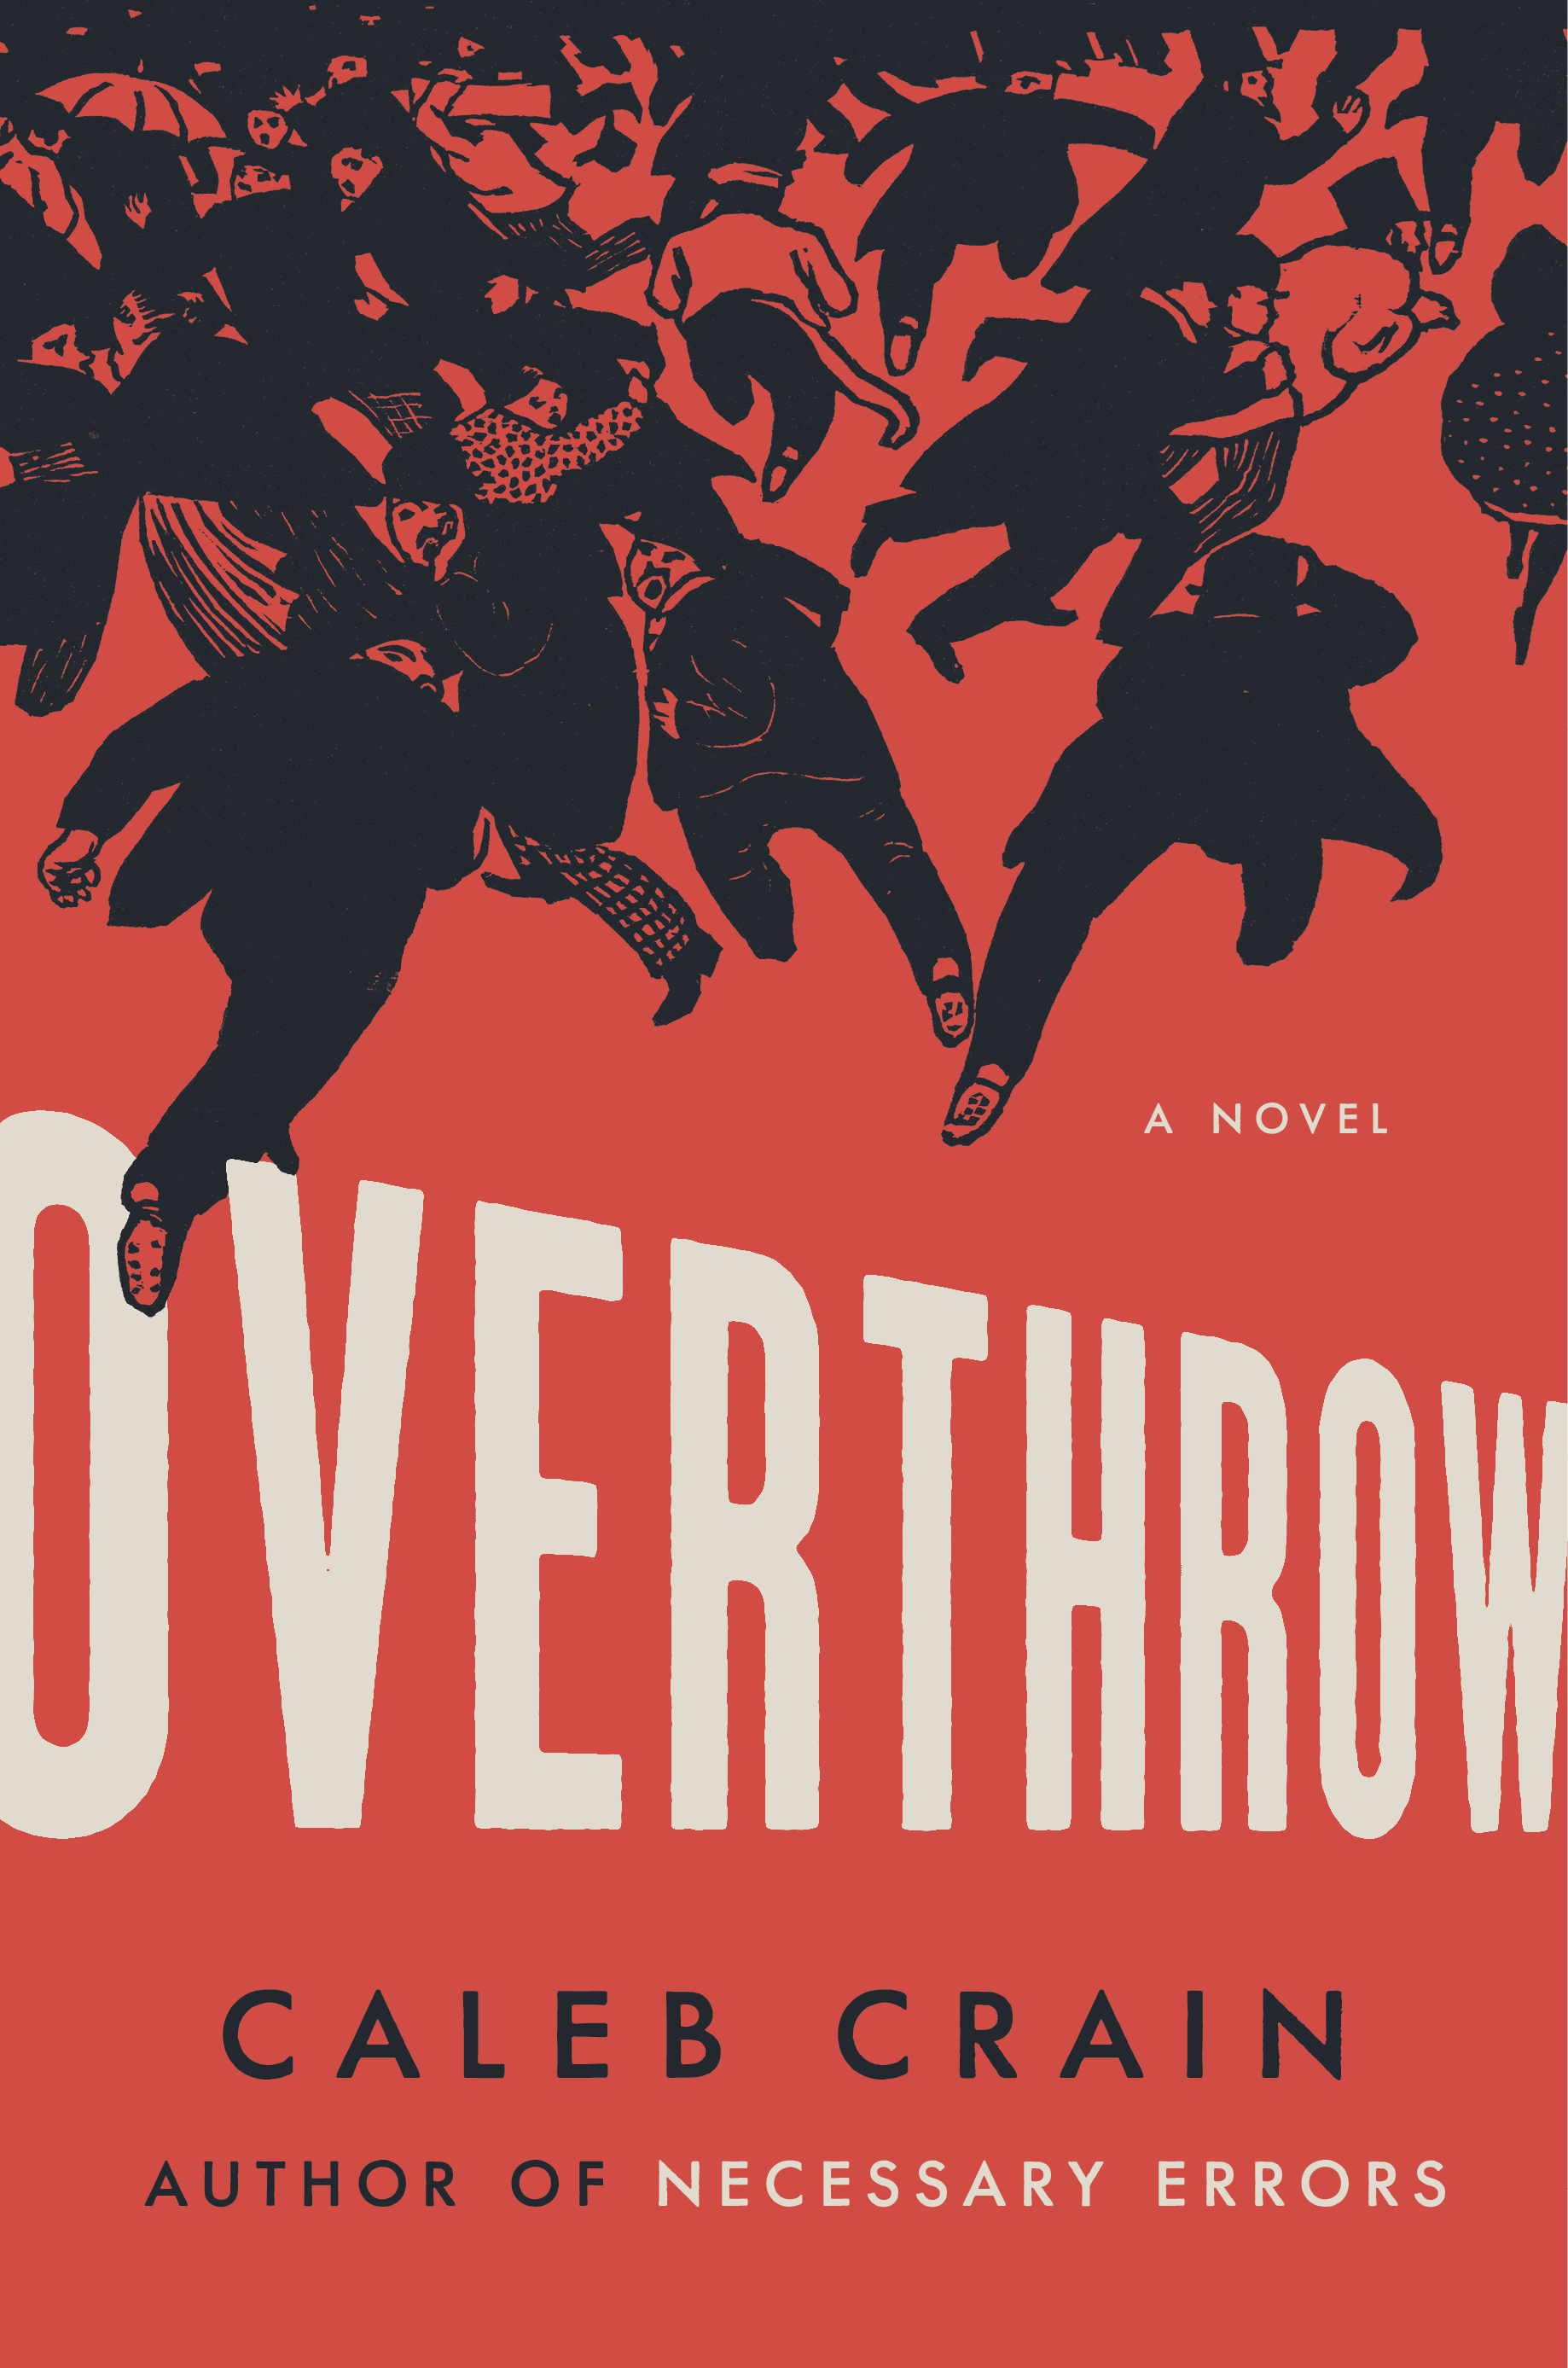 Overthrow by Caleb Crain